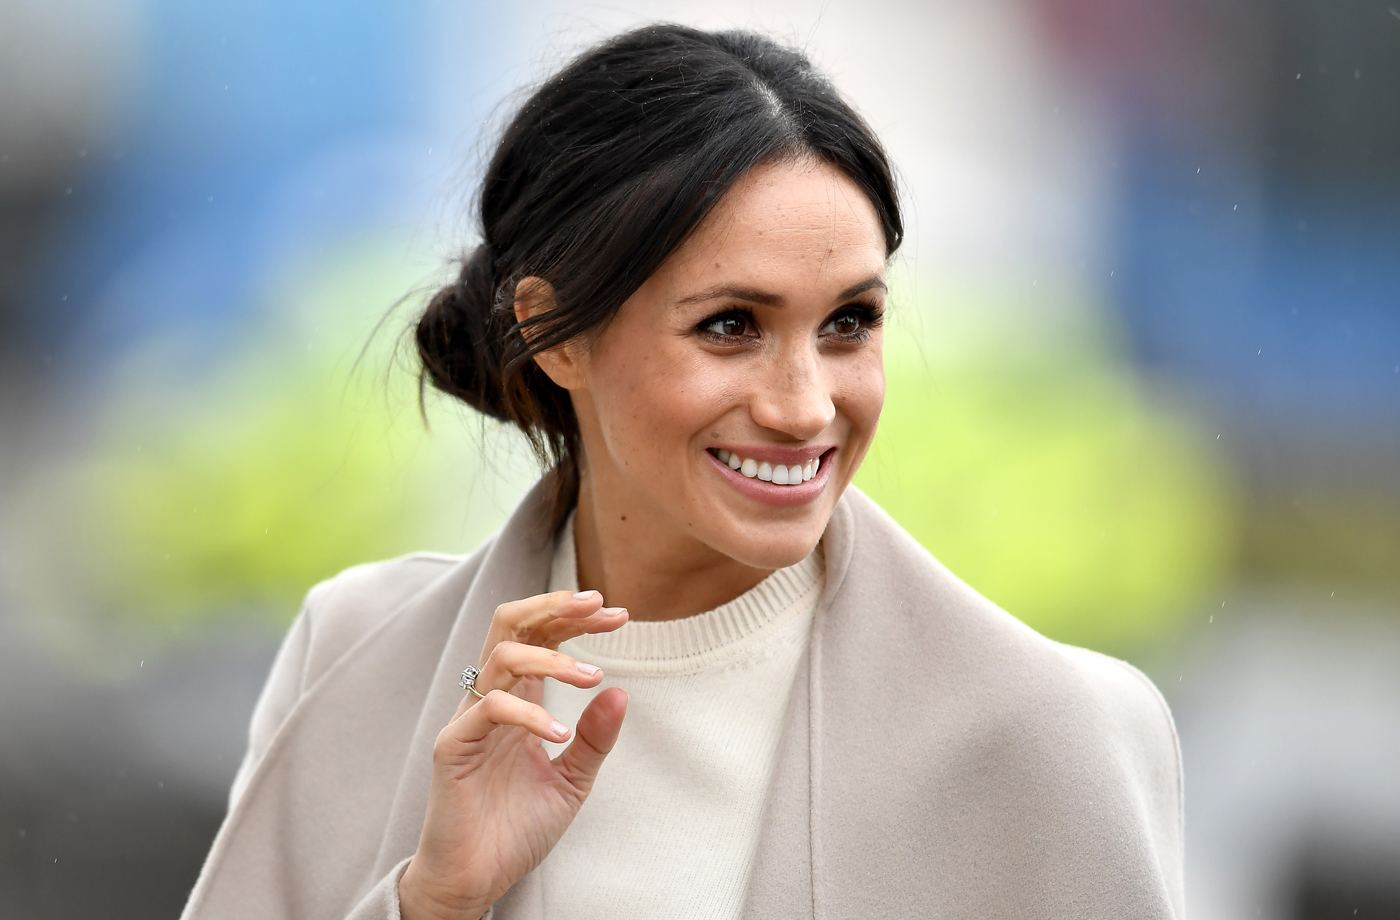 Thumbnail for Meghan Markle's First Royal Project: a Cookbook That Empowers Women